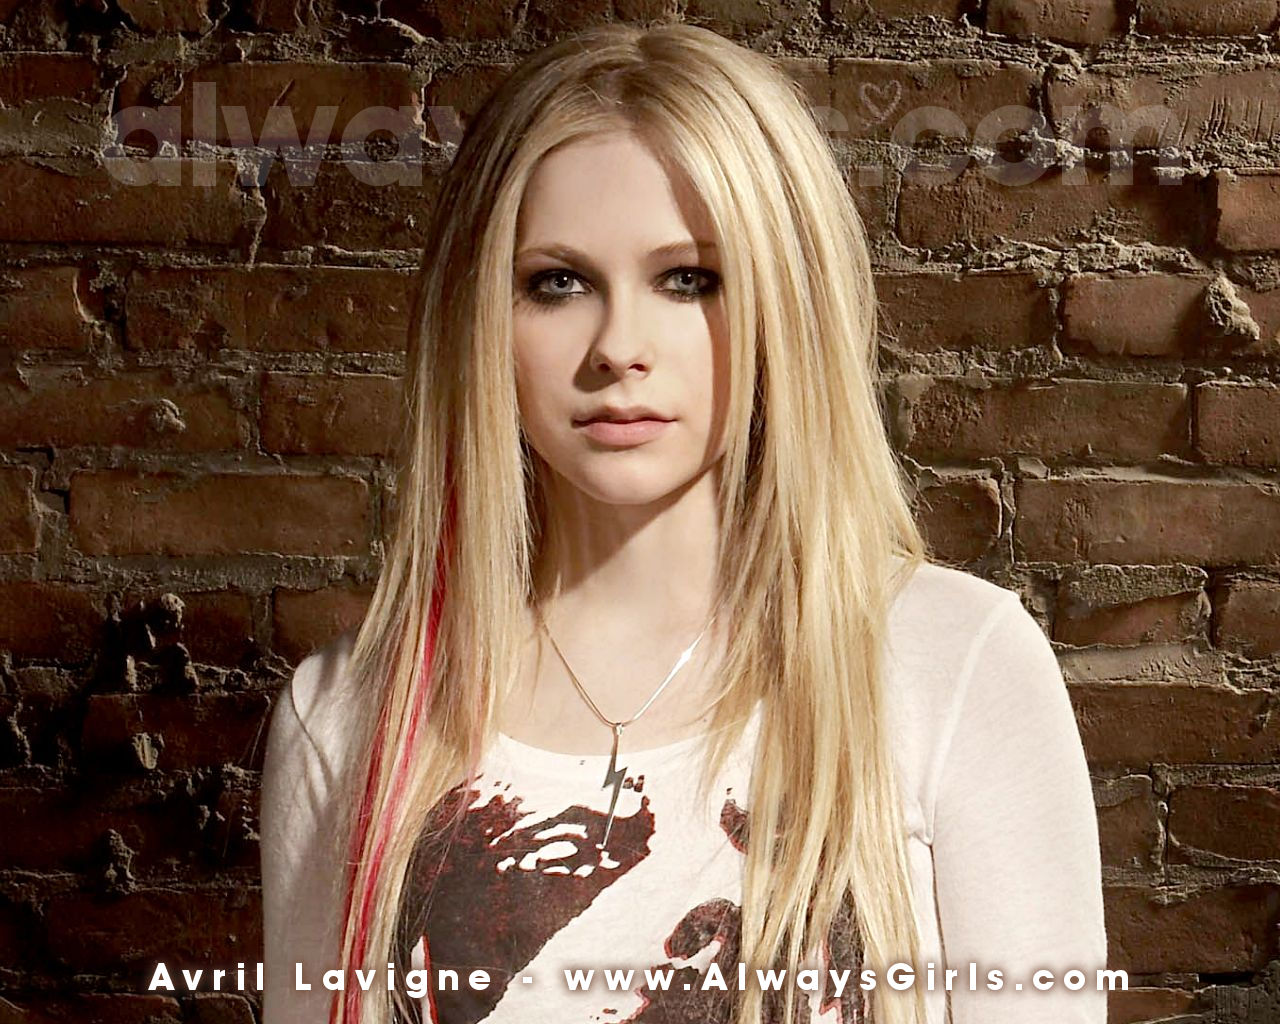 Avril Lavigne Wallpapers